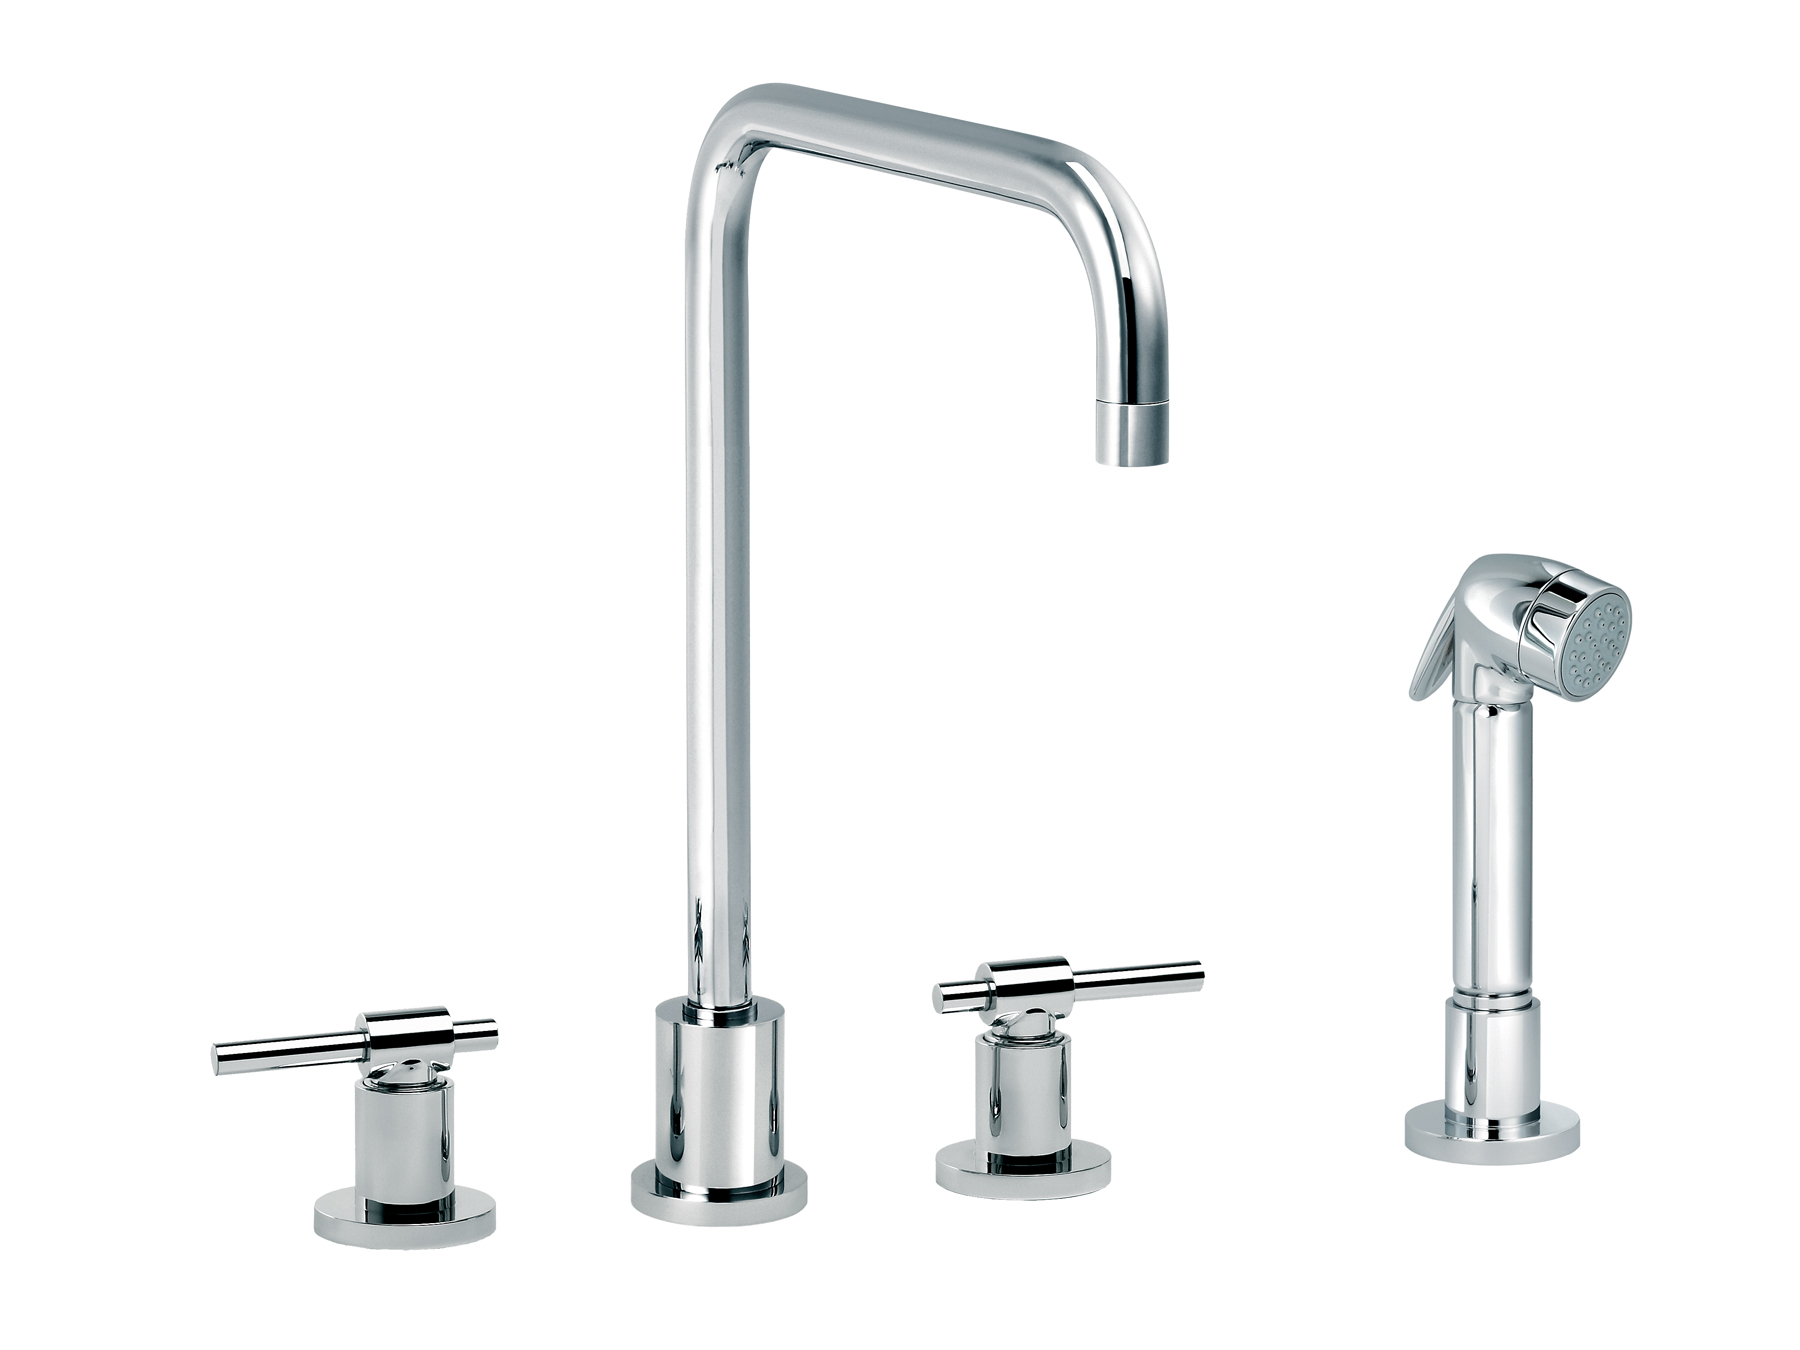 3-hole kitchen mixer, handshower, spout in U 4027.--.29